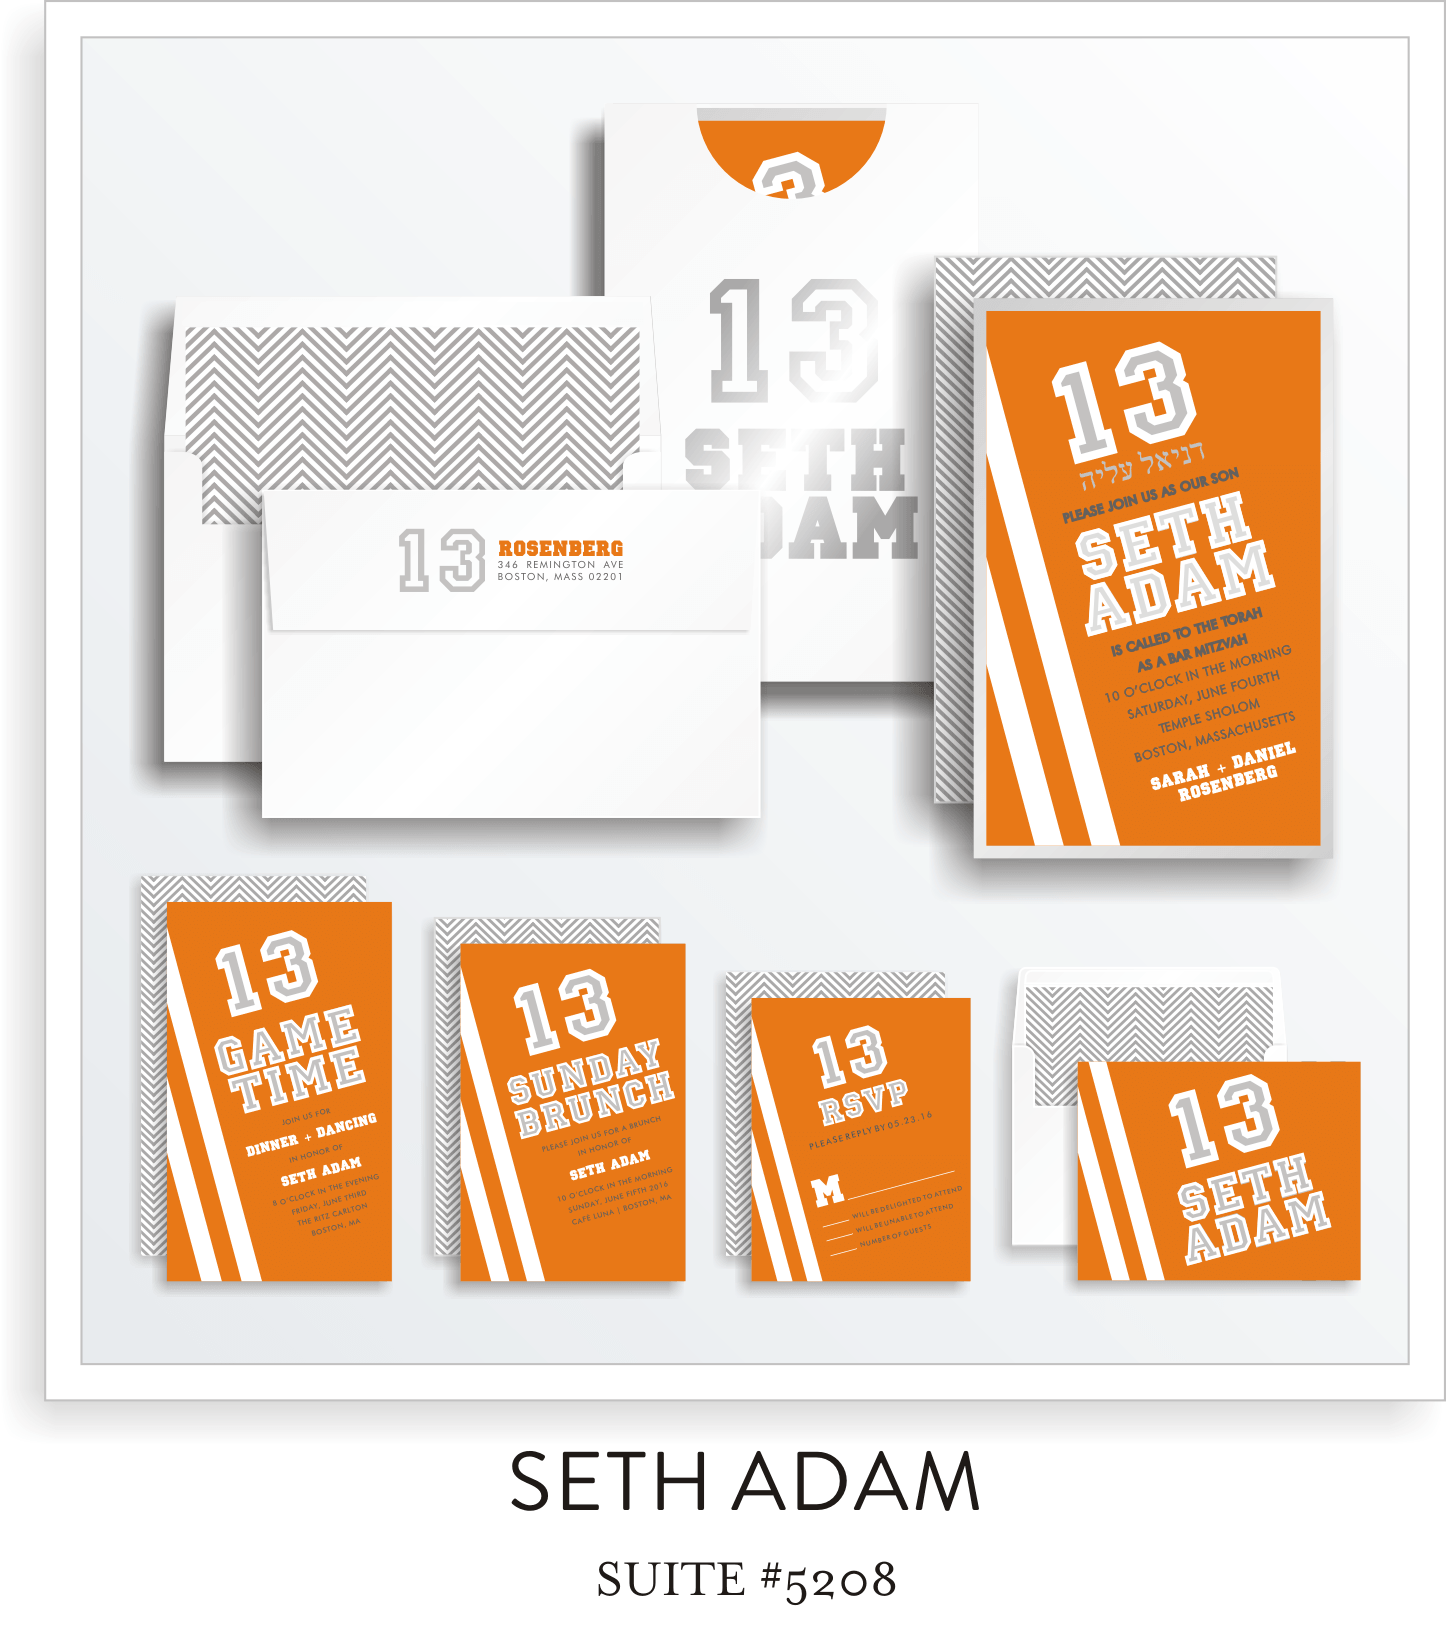 Copy of bar mitzvah invitation suite 5208